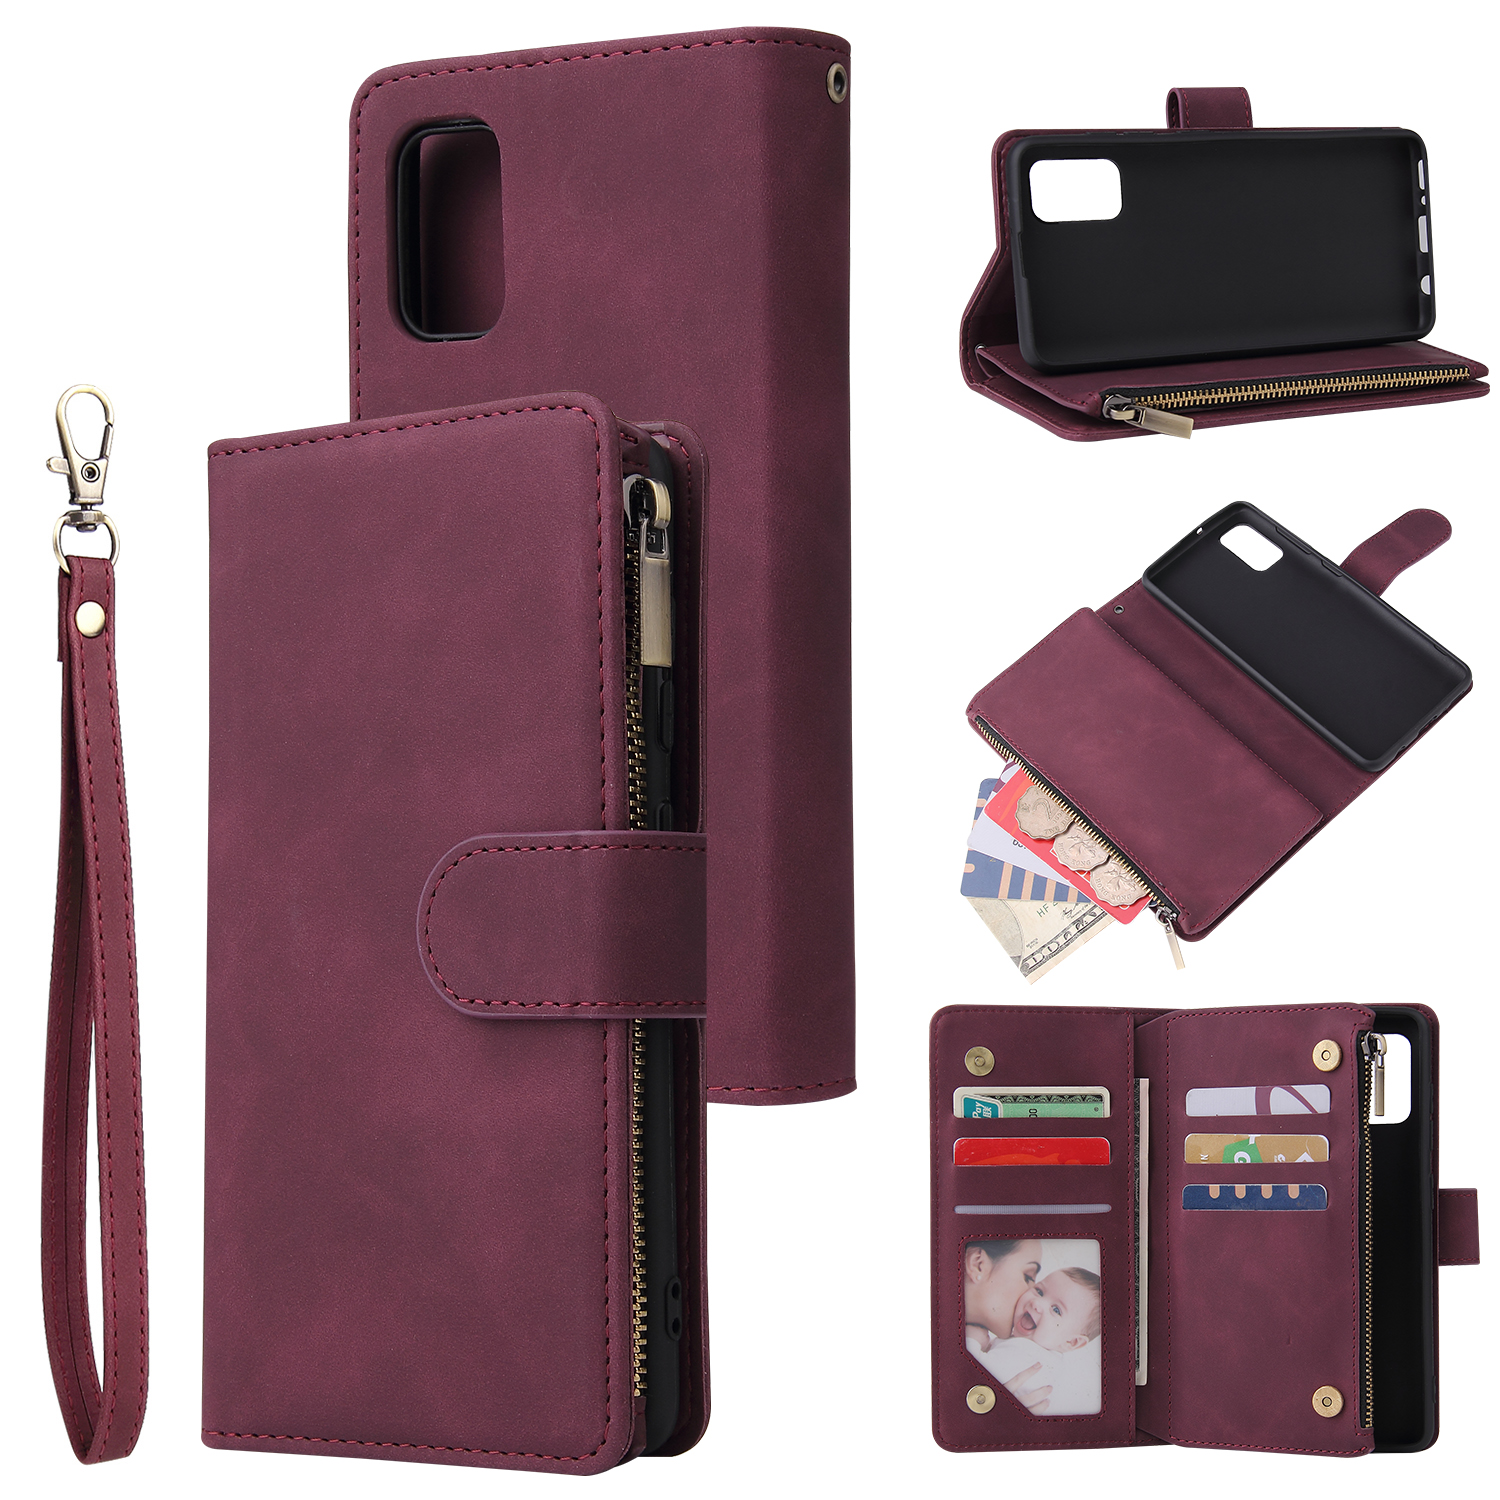 For Samsung A41 Mobile Phone Case Wallet Design Zipper Closure Overall Protection Cellphone Cover  5 wine red